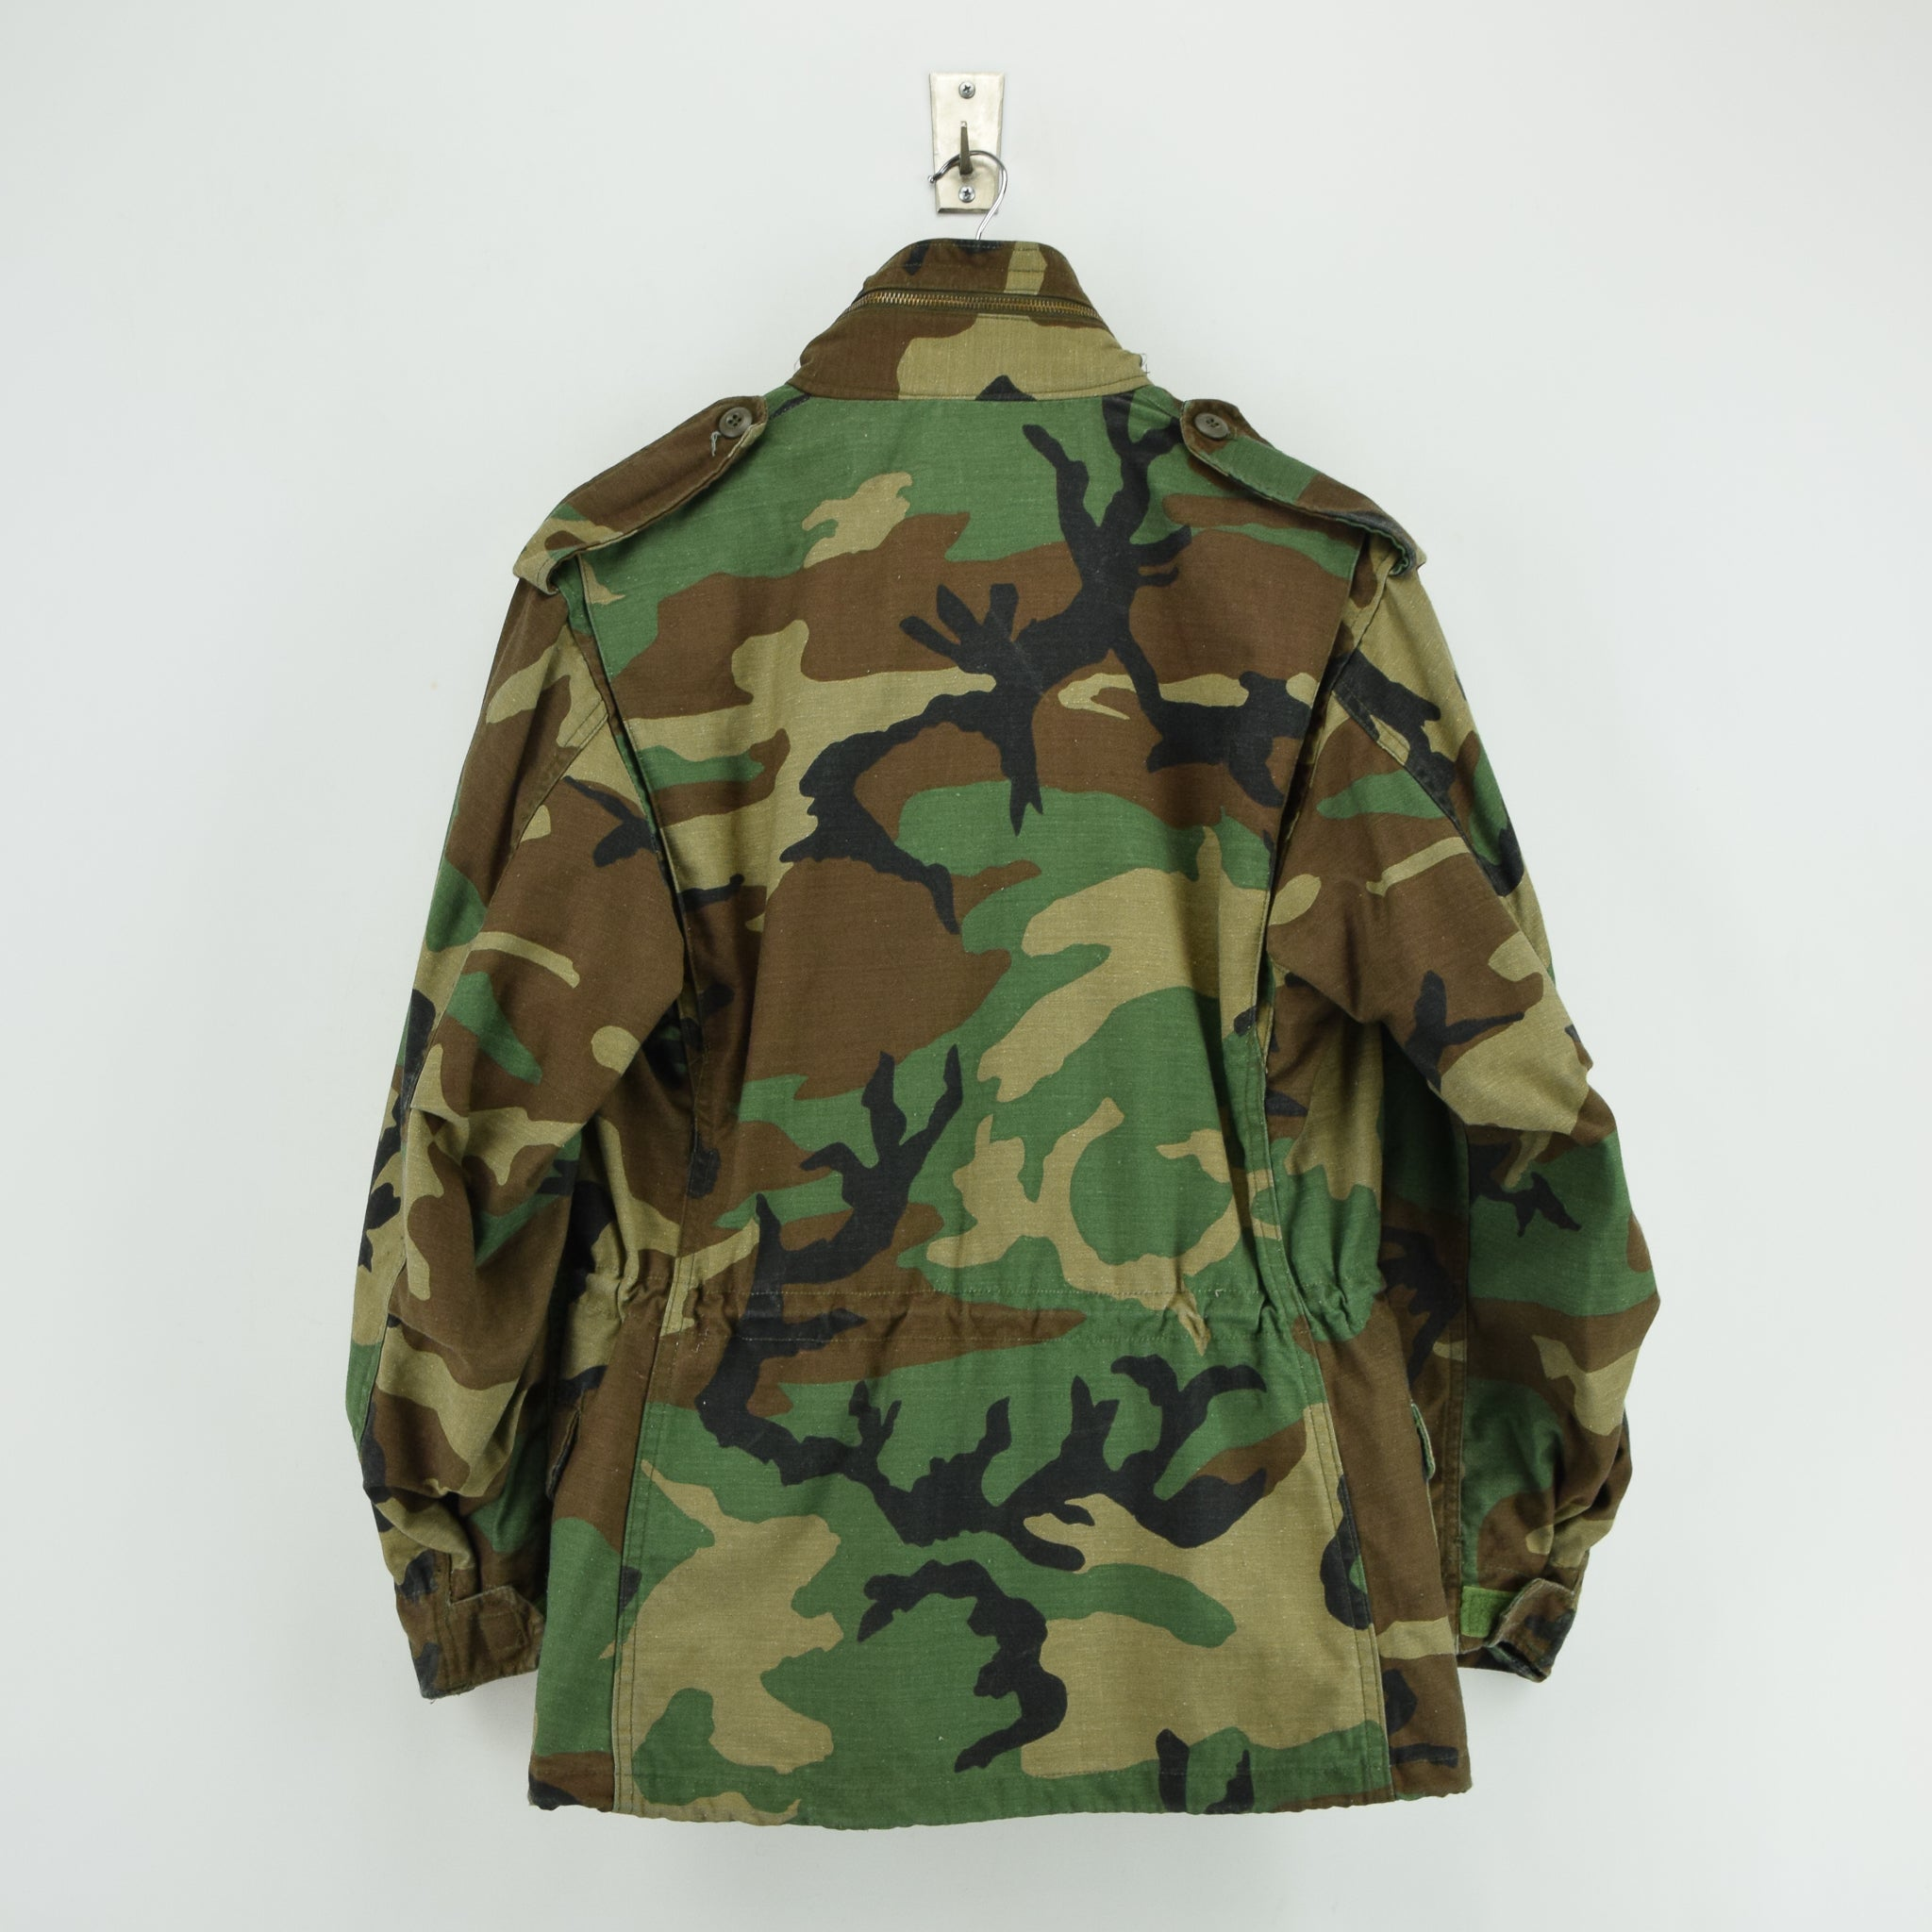 Vintage 80s Alpha Industries M-65 Woodland Camouflage Field Coat Army Jacket S back